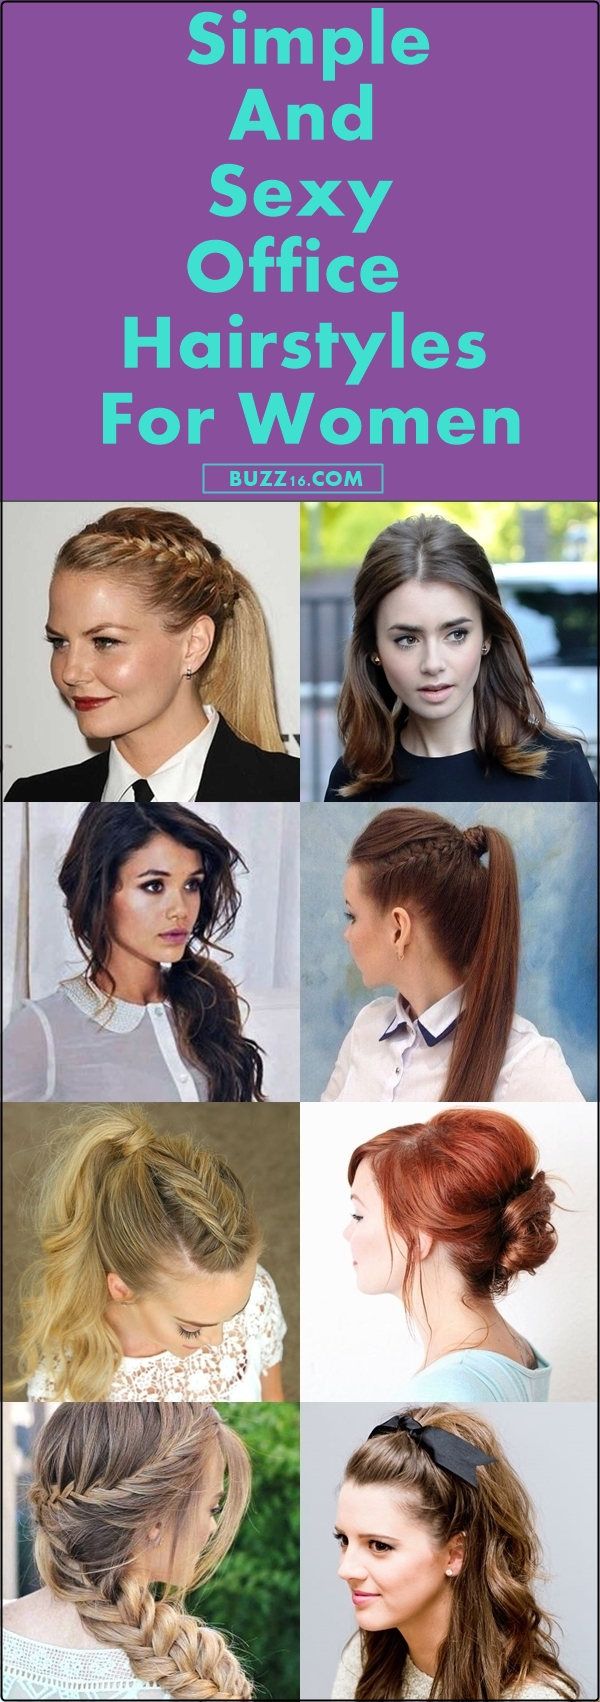 40 Simple and Sexy Office Hairstyles for Women